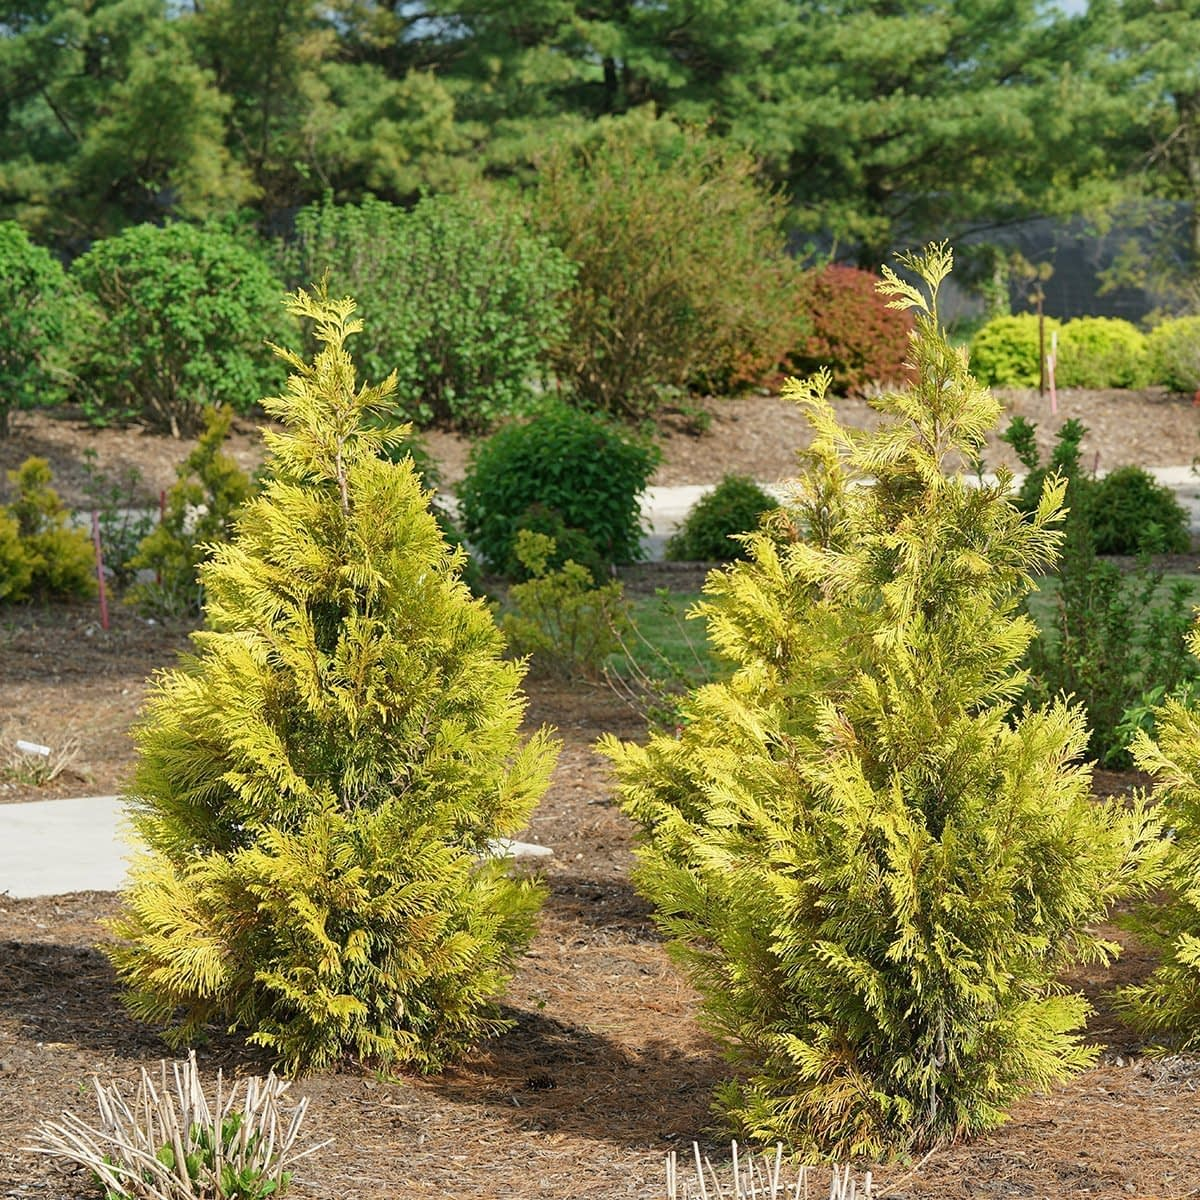 Two Fluffy arborvitae in early spring, surrounded by flowering shrubs that are beginning to emerge.